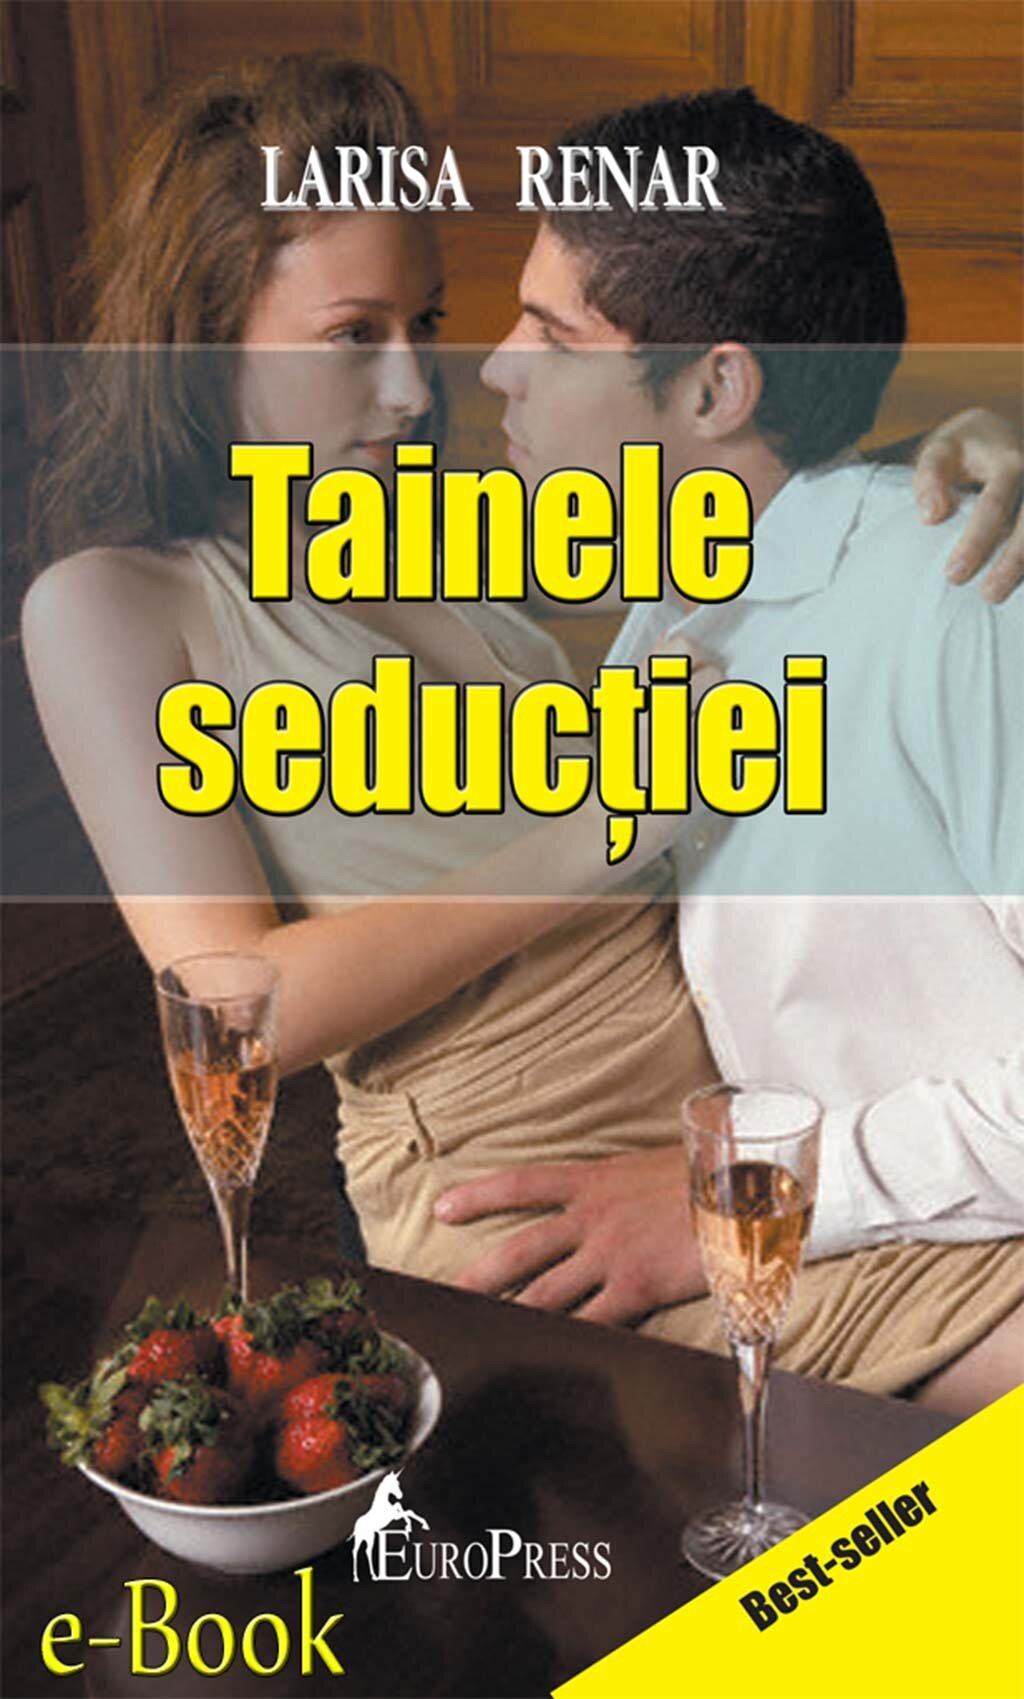 Tainele seductiei (eBook)